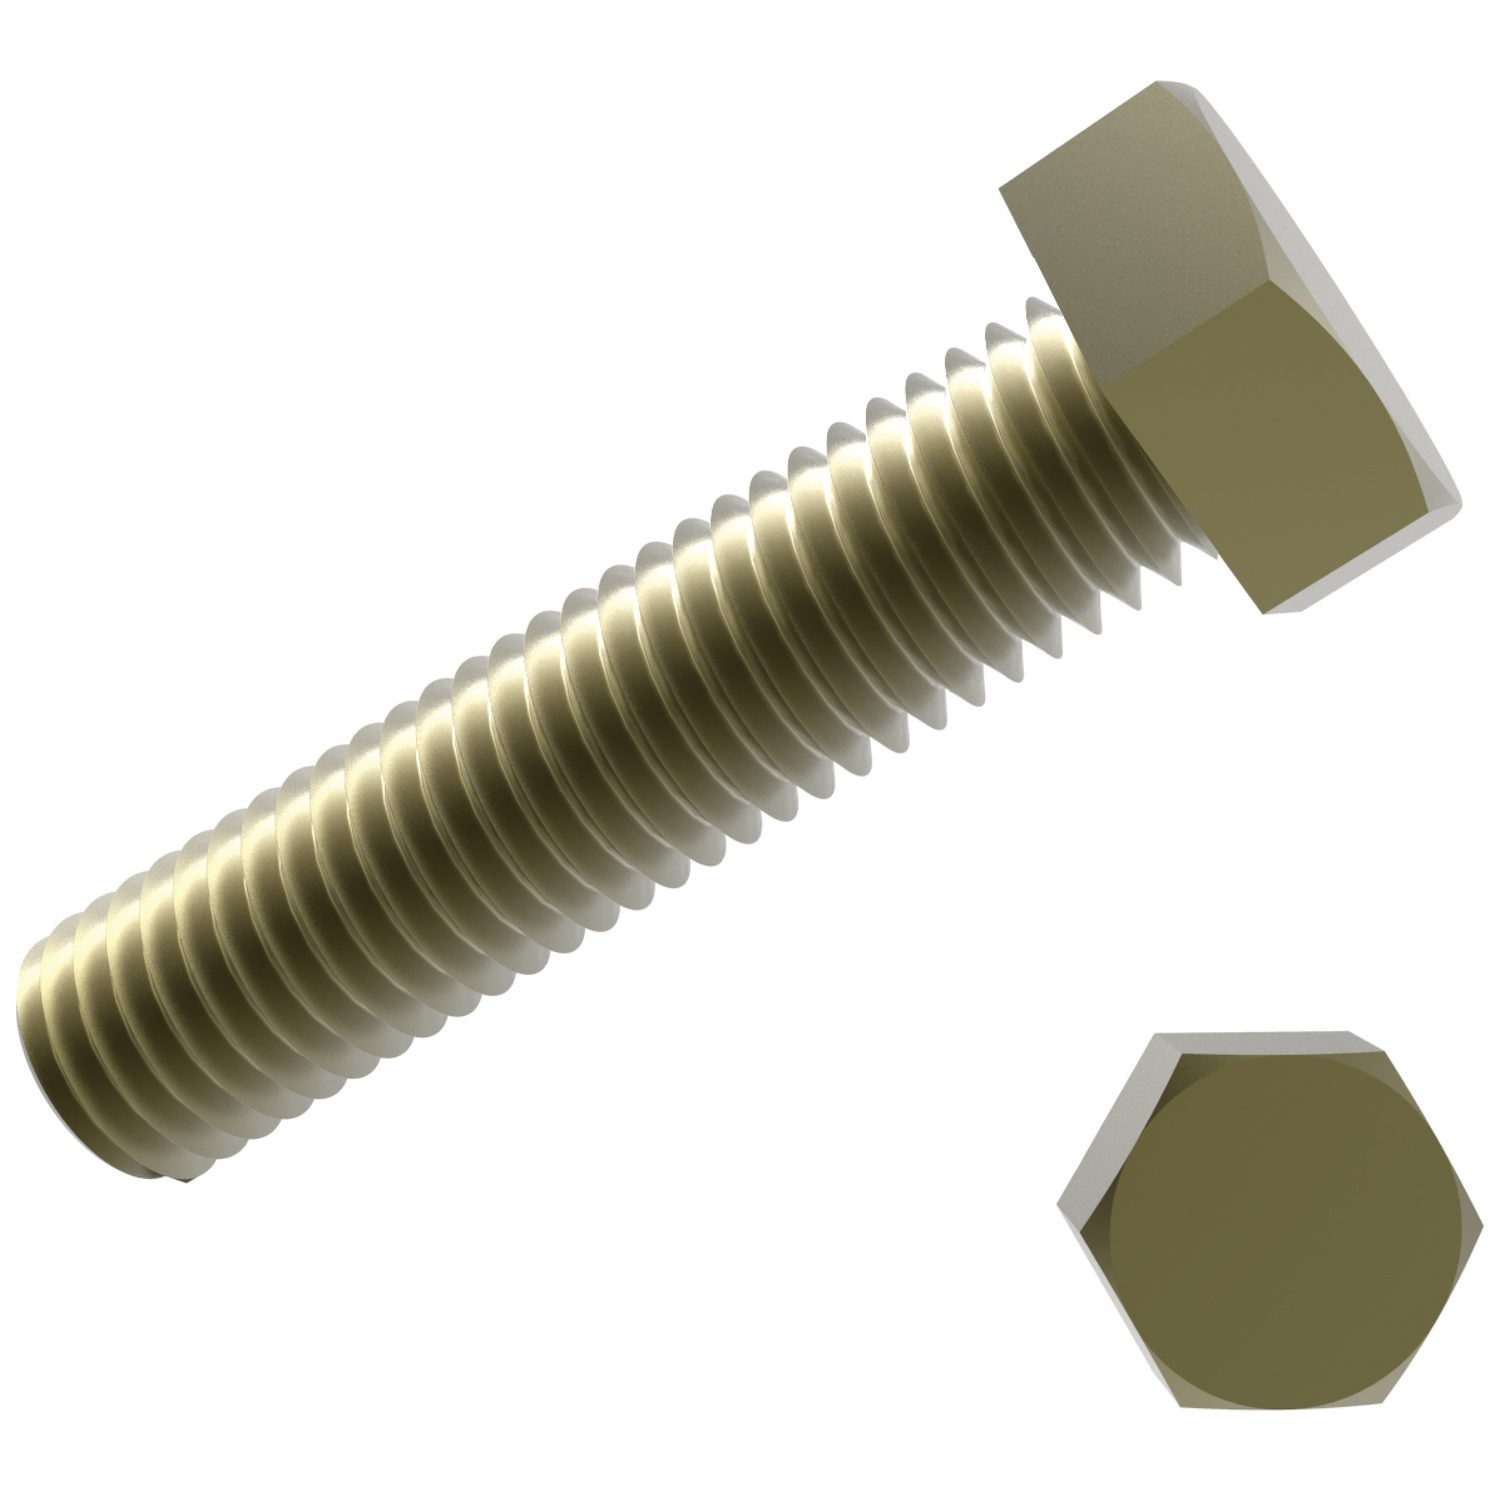 P0260.BR - Hexagon Head Set Screws